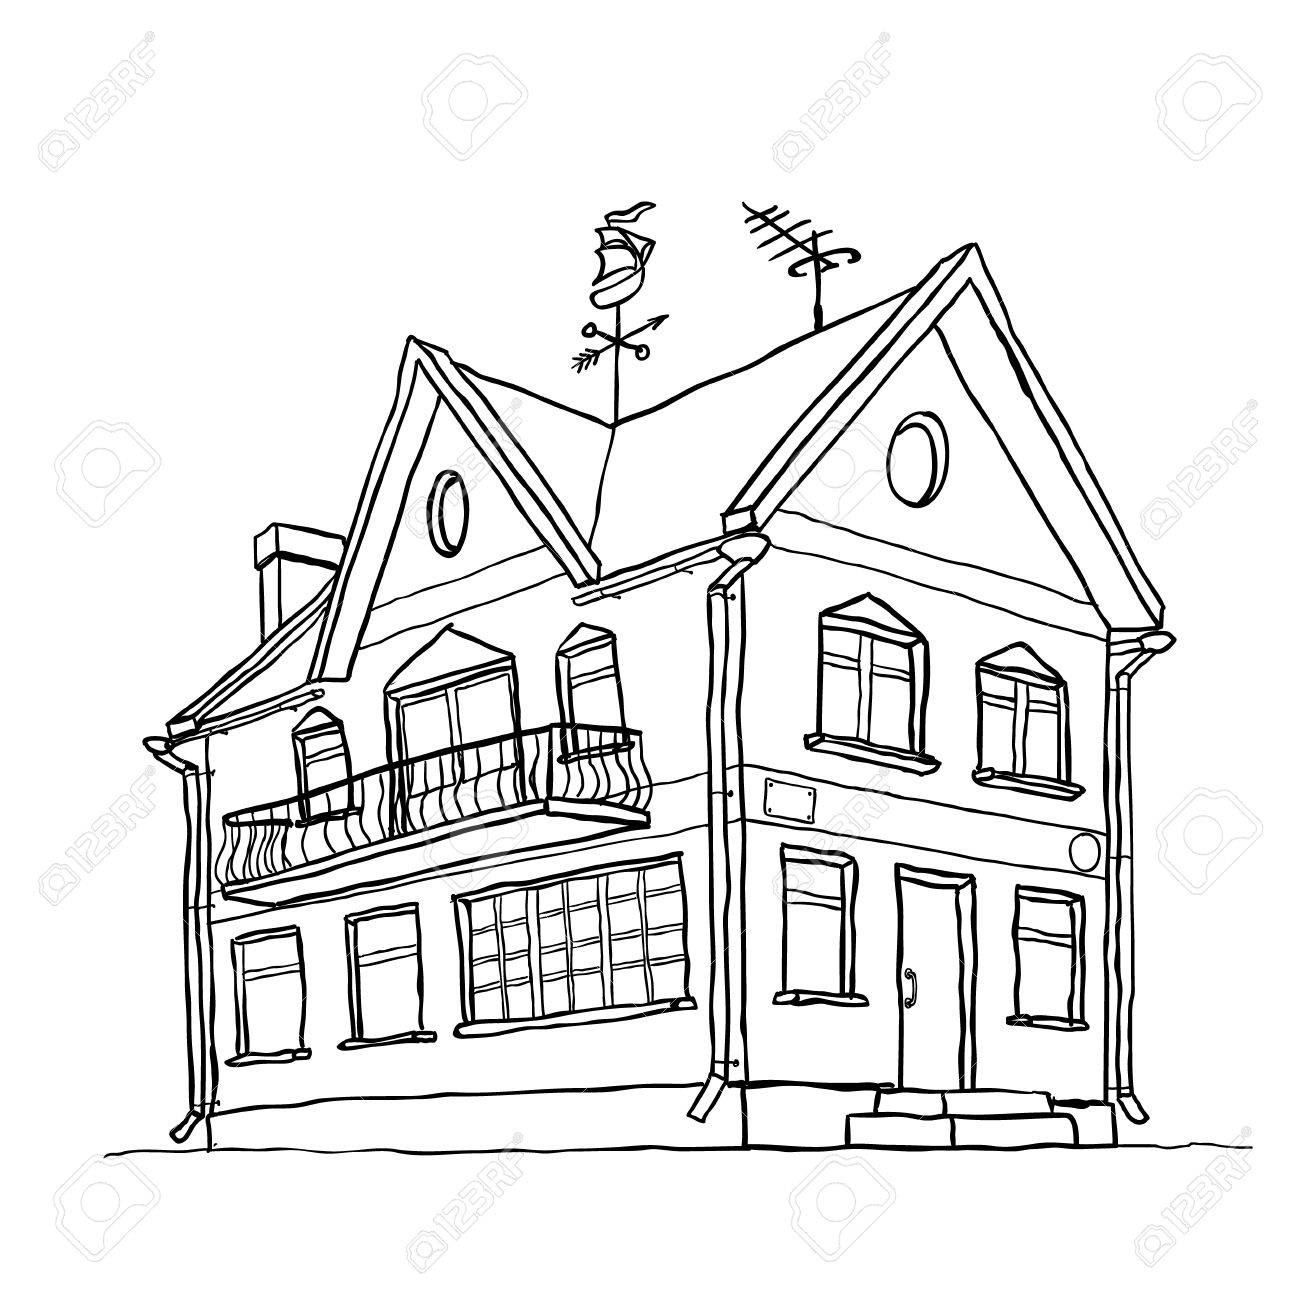 1300x1300 House Drawing Sketch Simple House Sketches Drawings Sketch